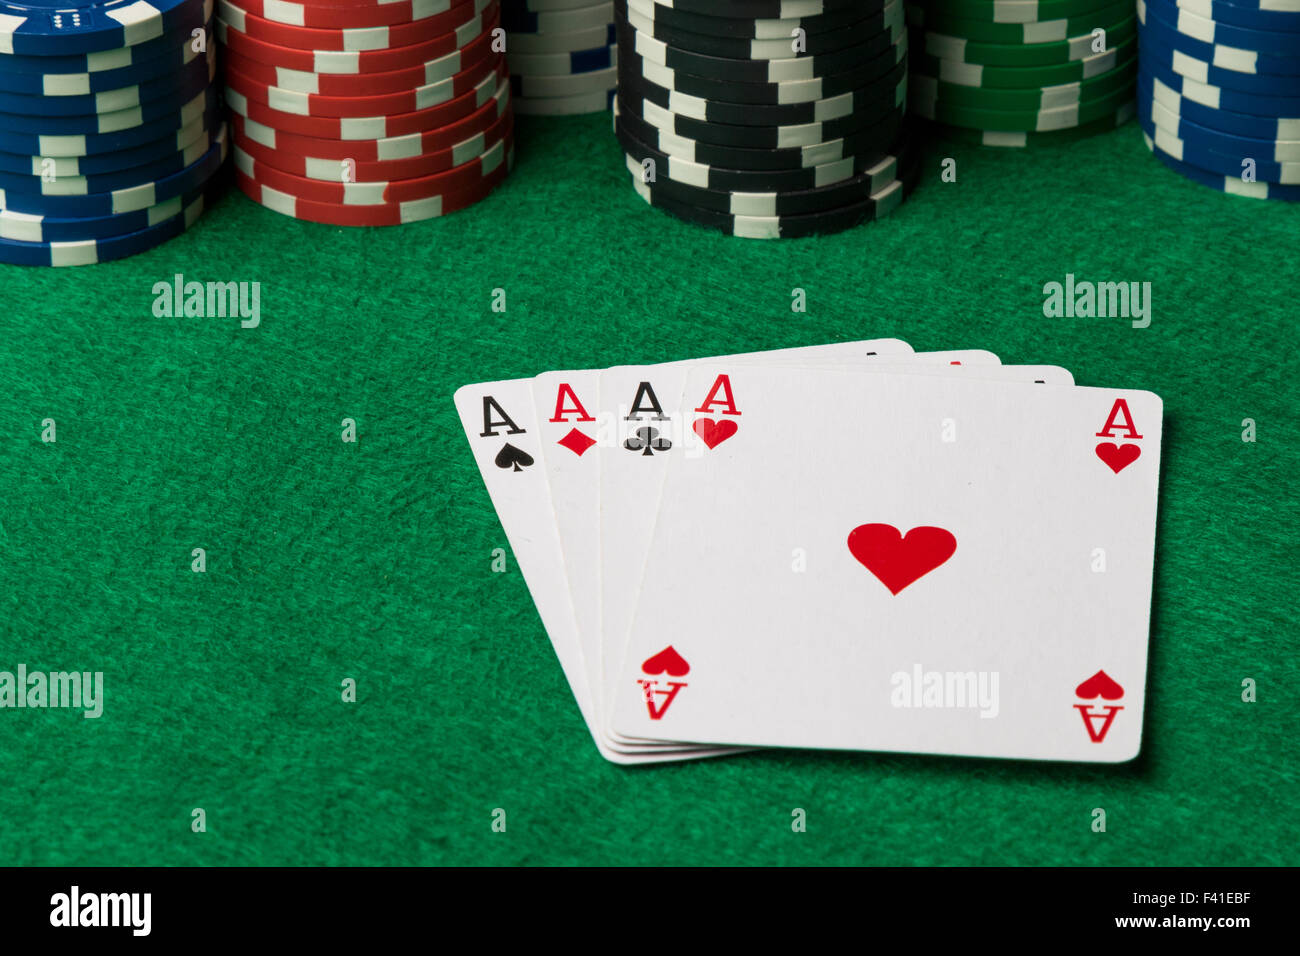 four of a kind poker hand Aces - Stock Image